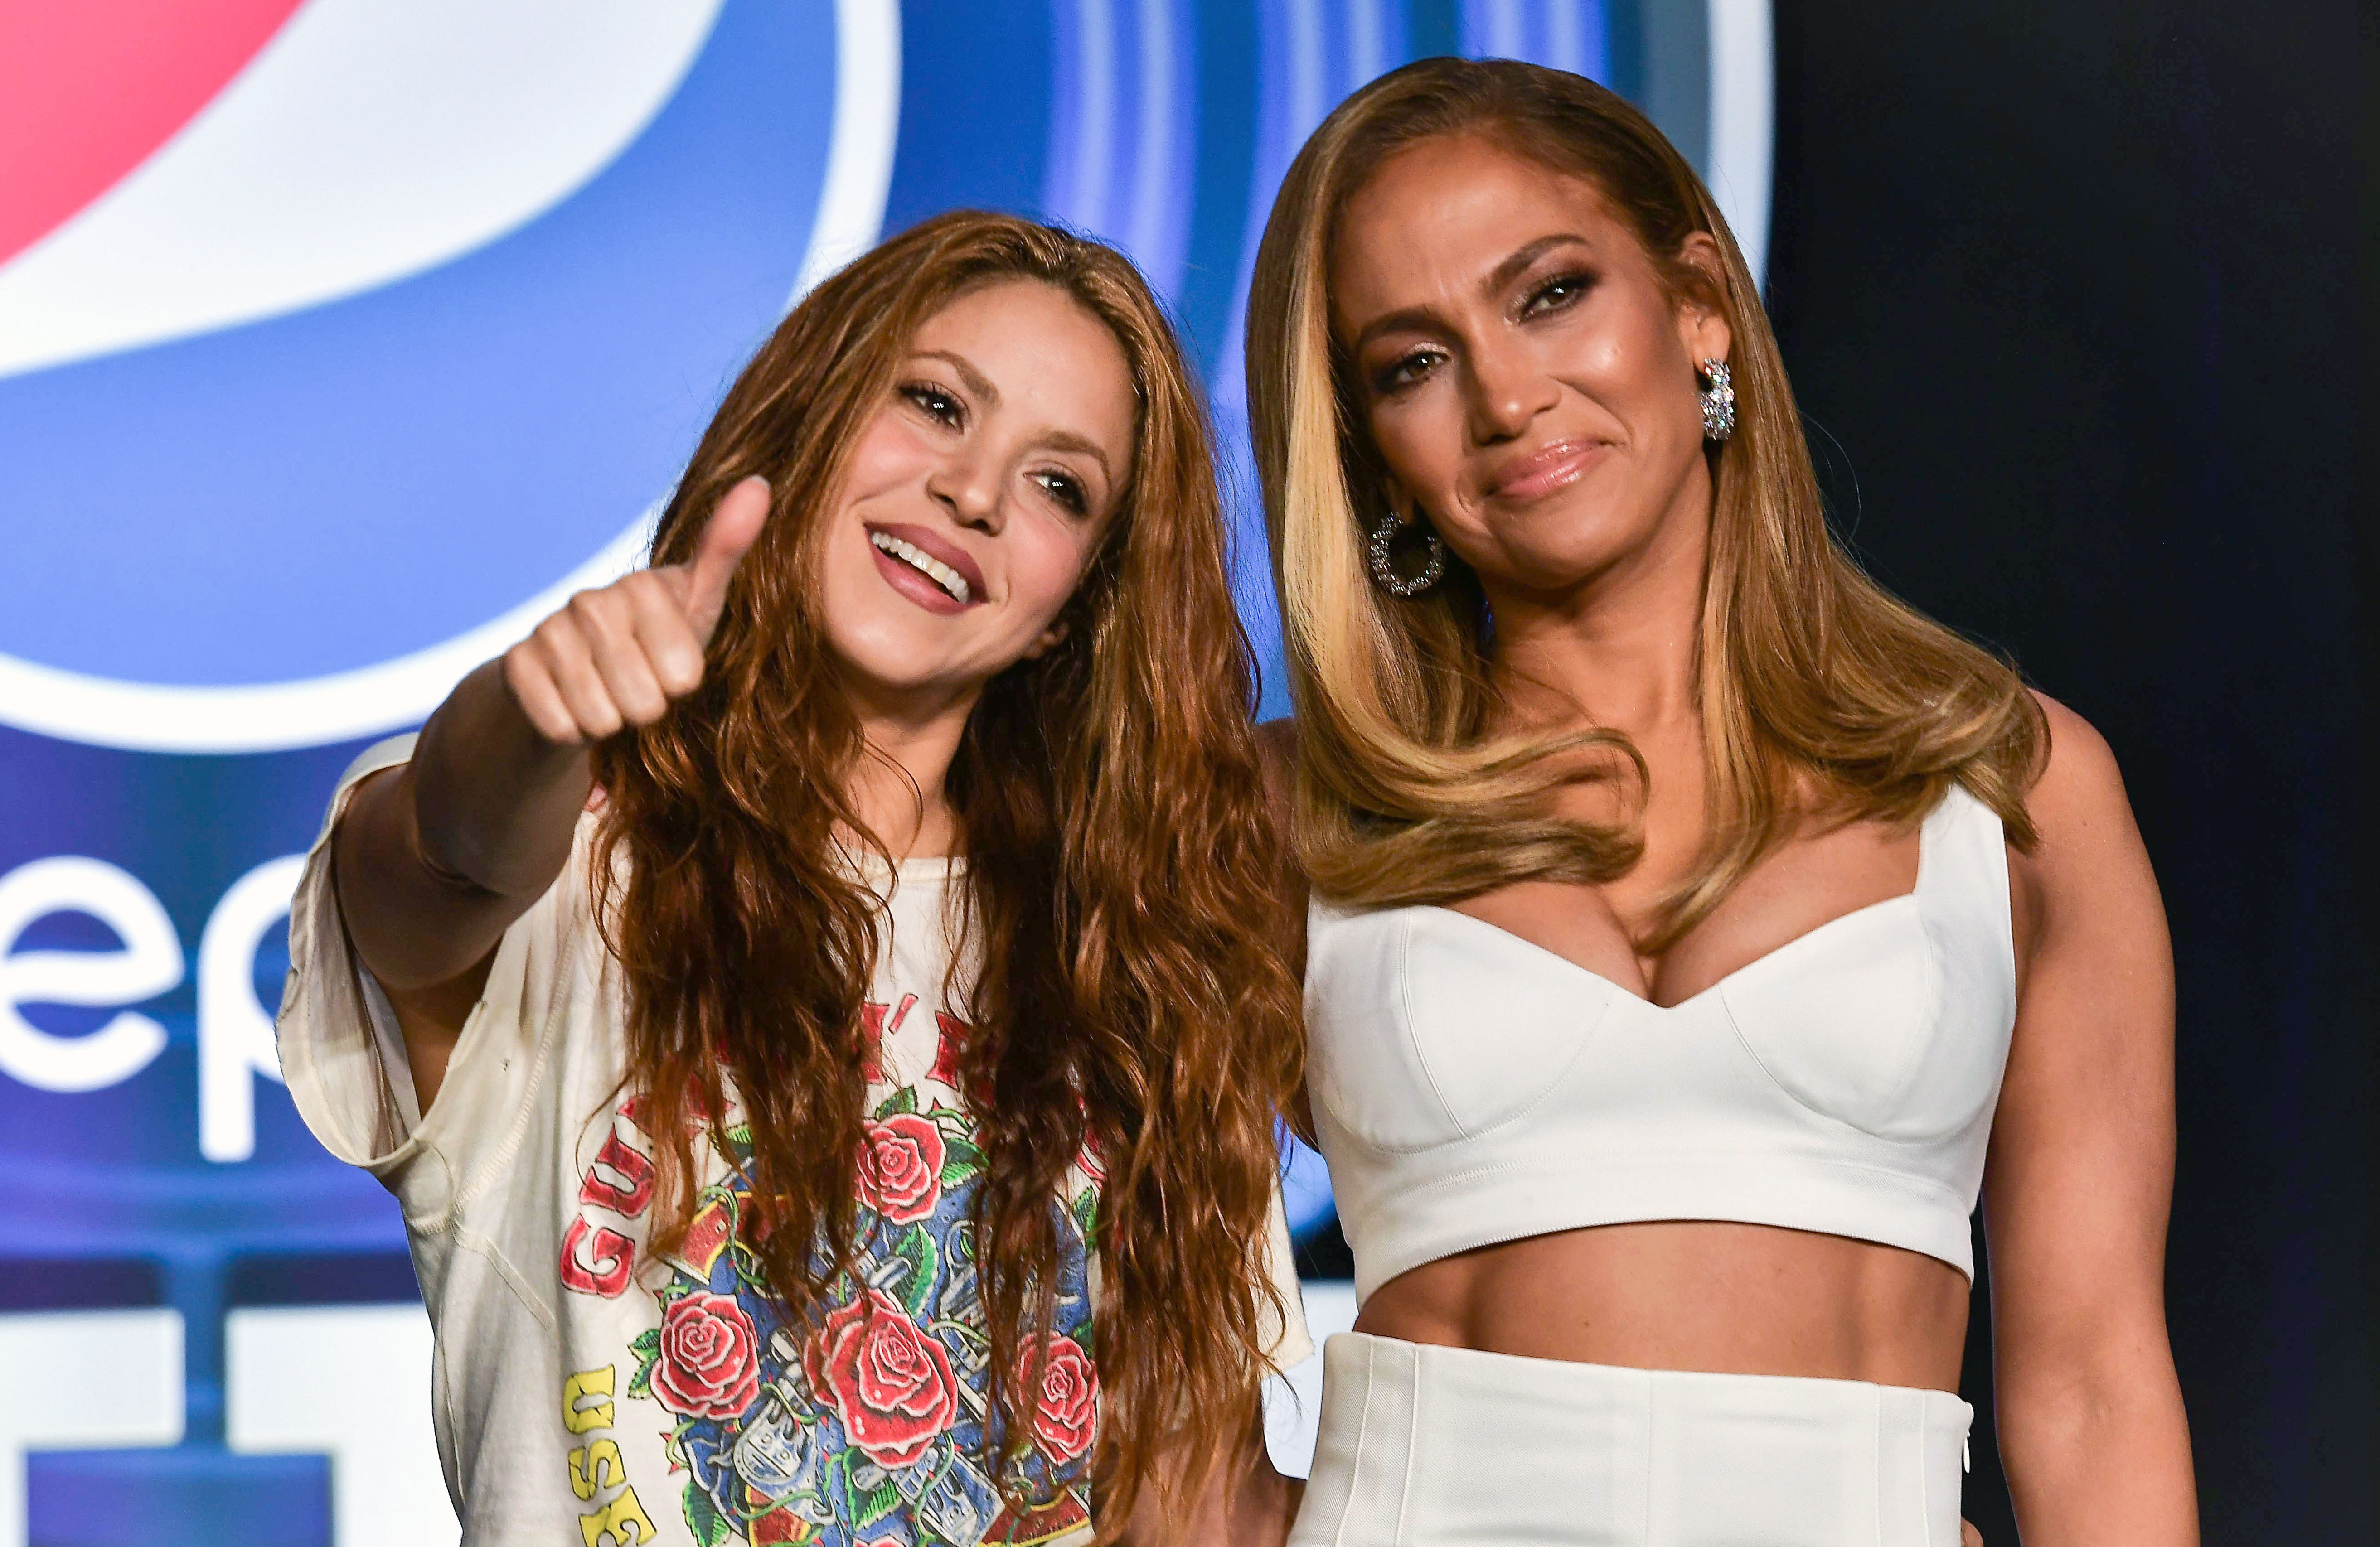 Jennifer Lopez and Shakira Bring the Heat to Miami With Fierce Super Bowl 2020 Halftime Show